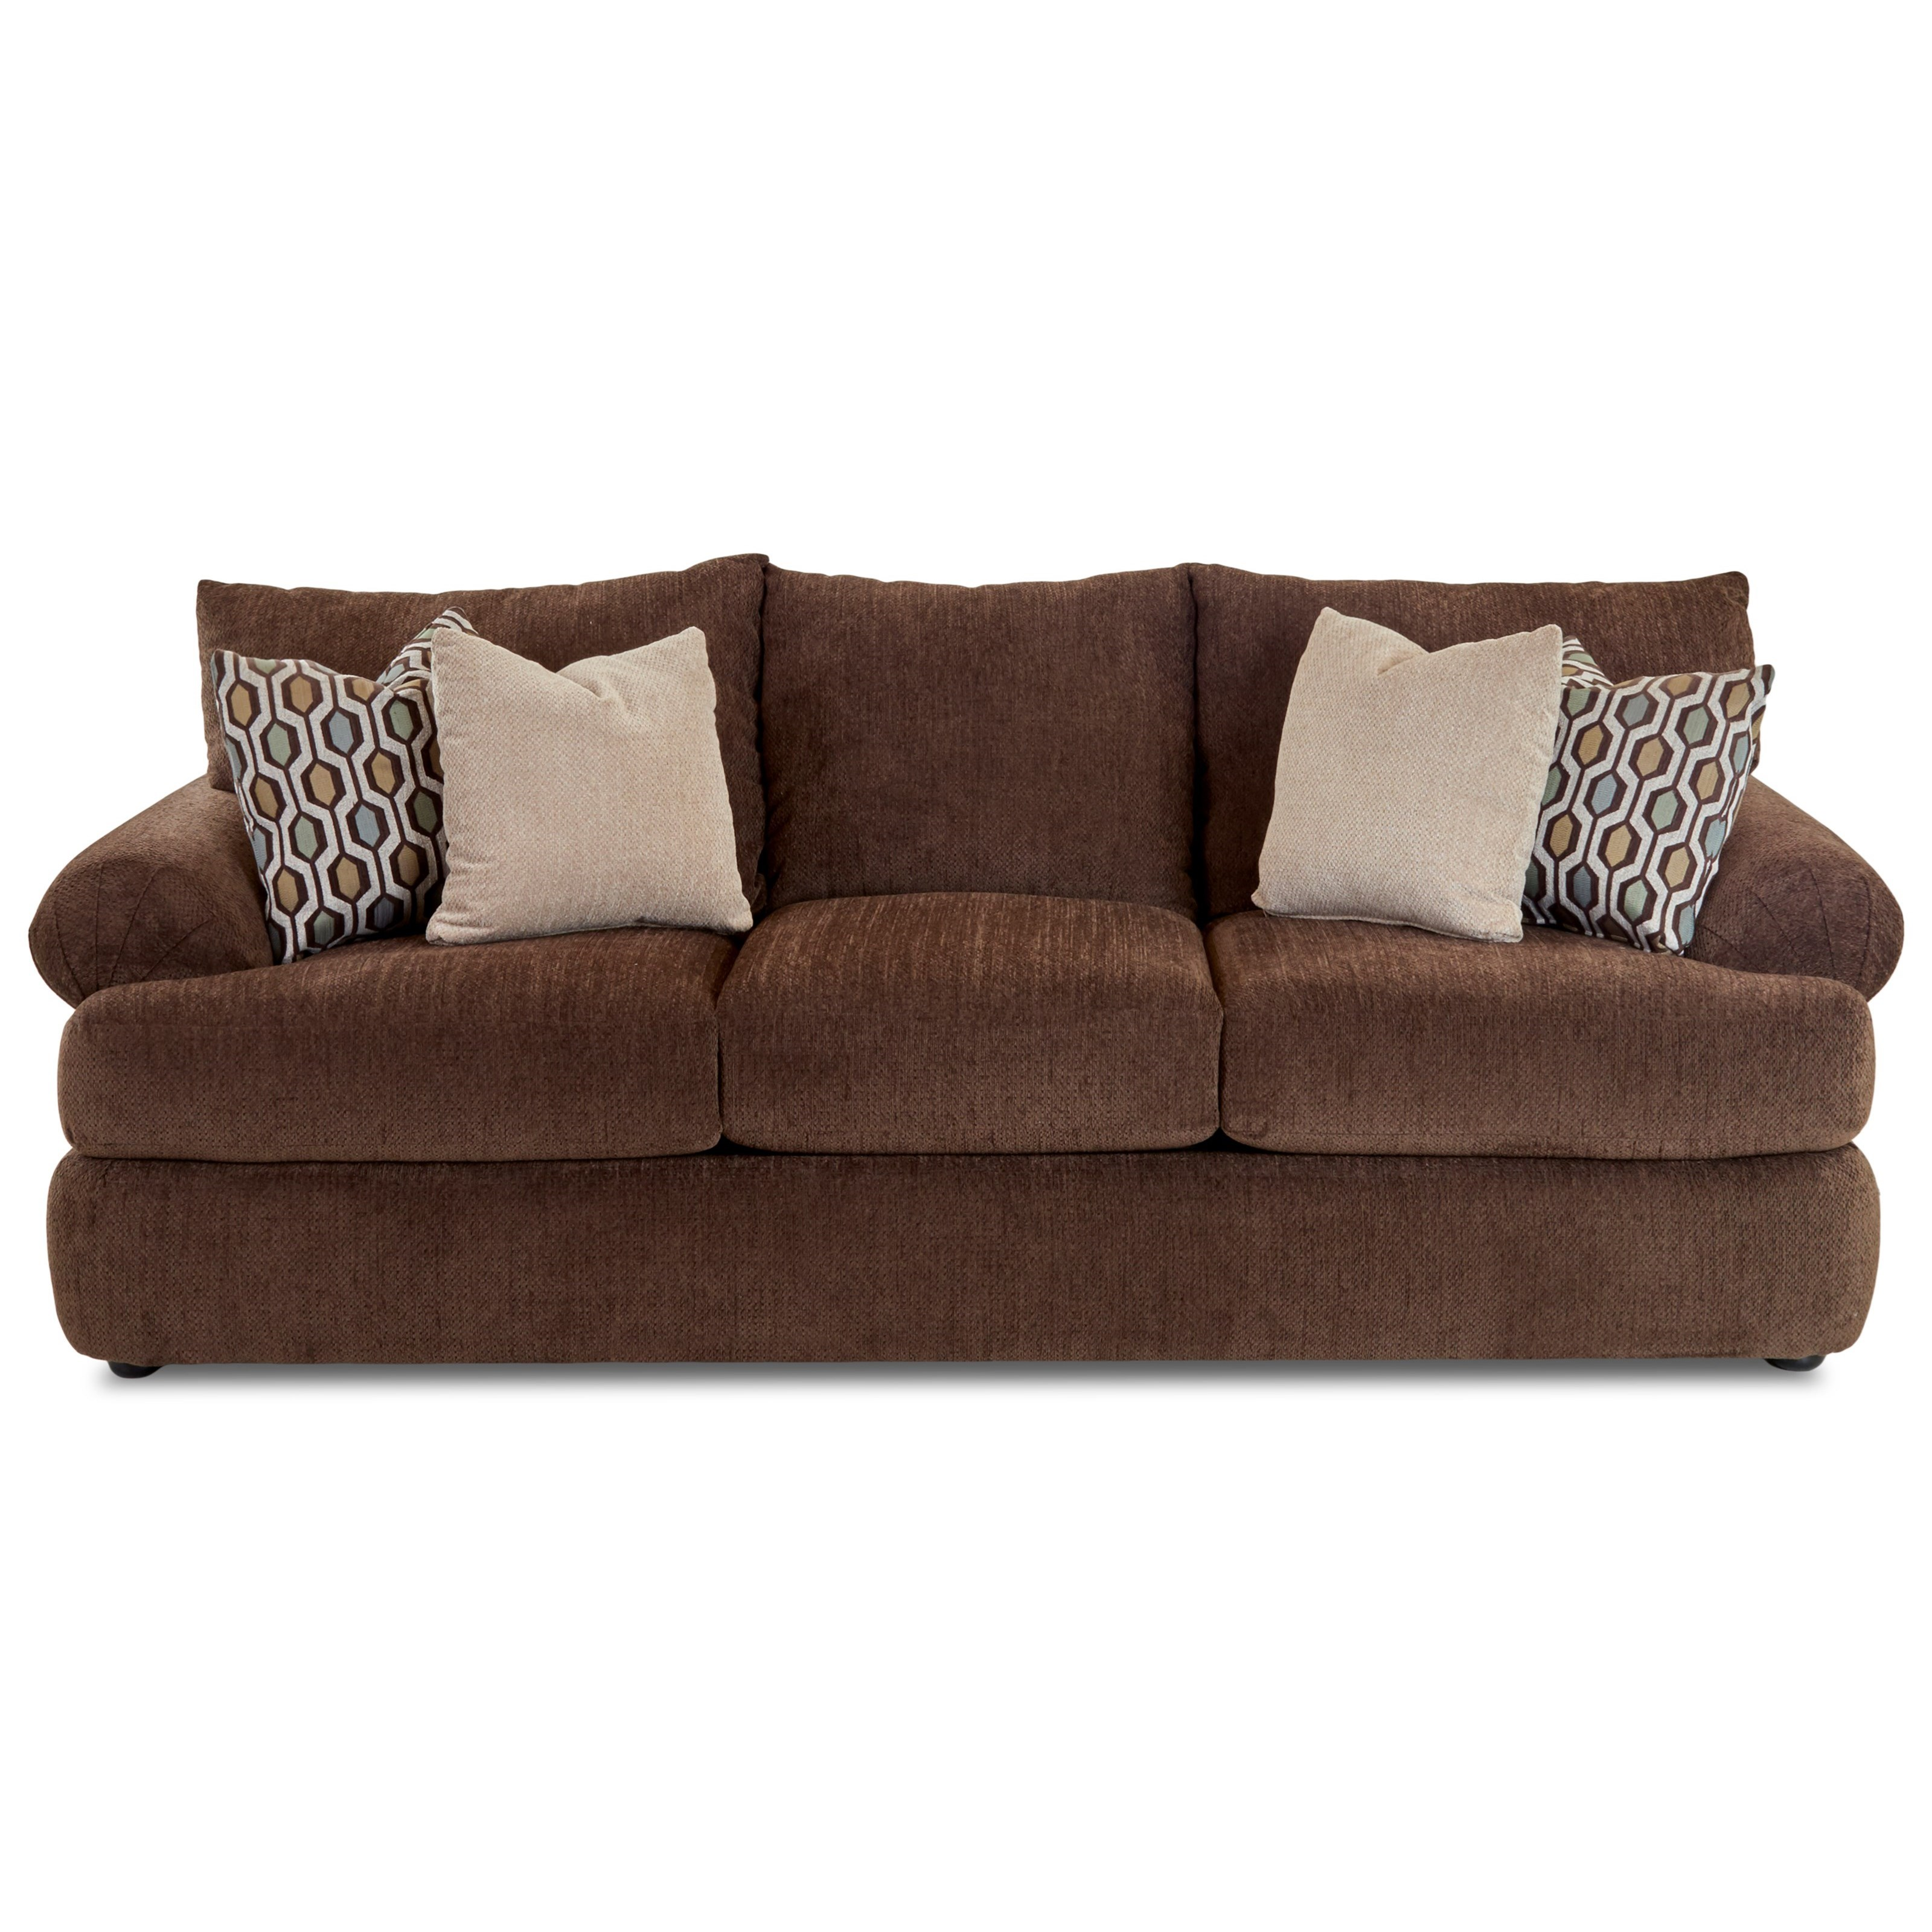 Klaussner Samantha Upholstered Stationary Sofa   Item Number: 36840S